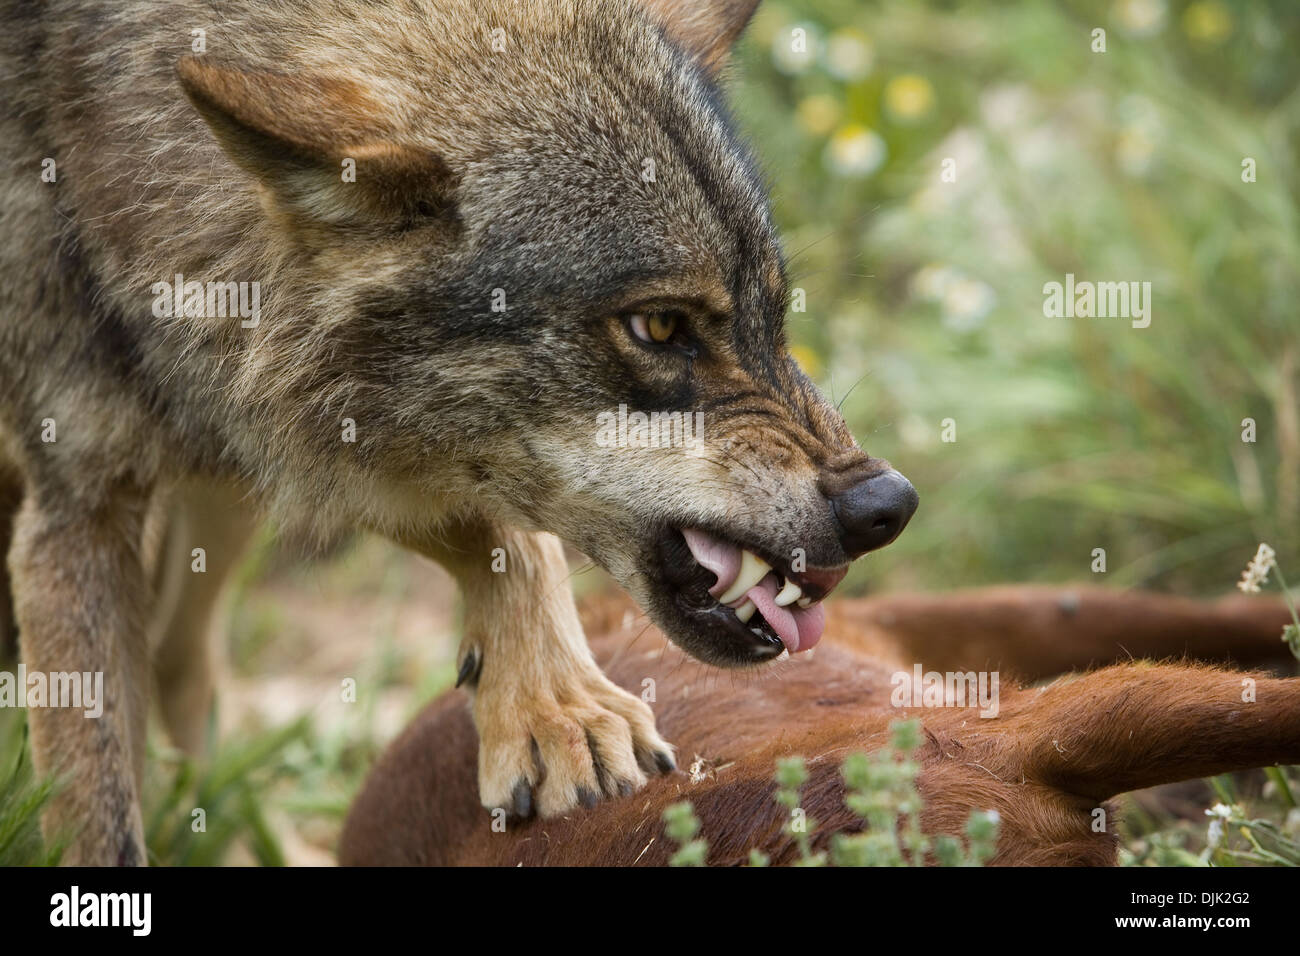 Iberian wolf eating. Wolf park, Antequera, Malaga, Andalusia, Spain - Stock Image